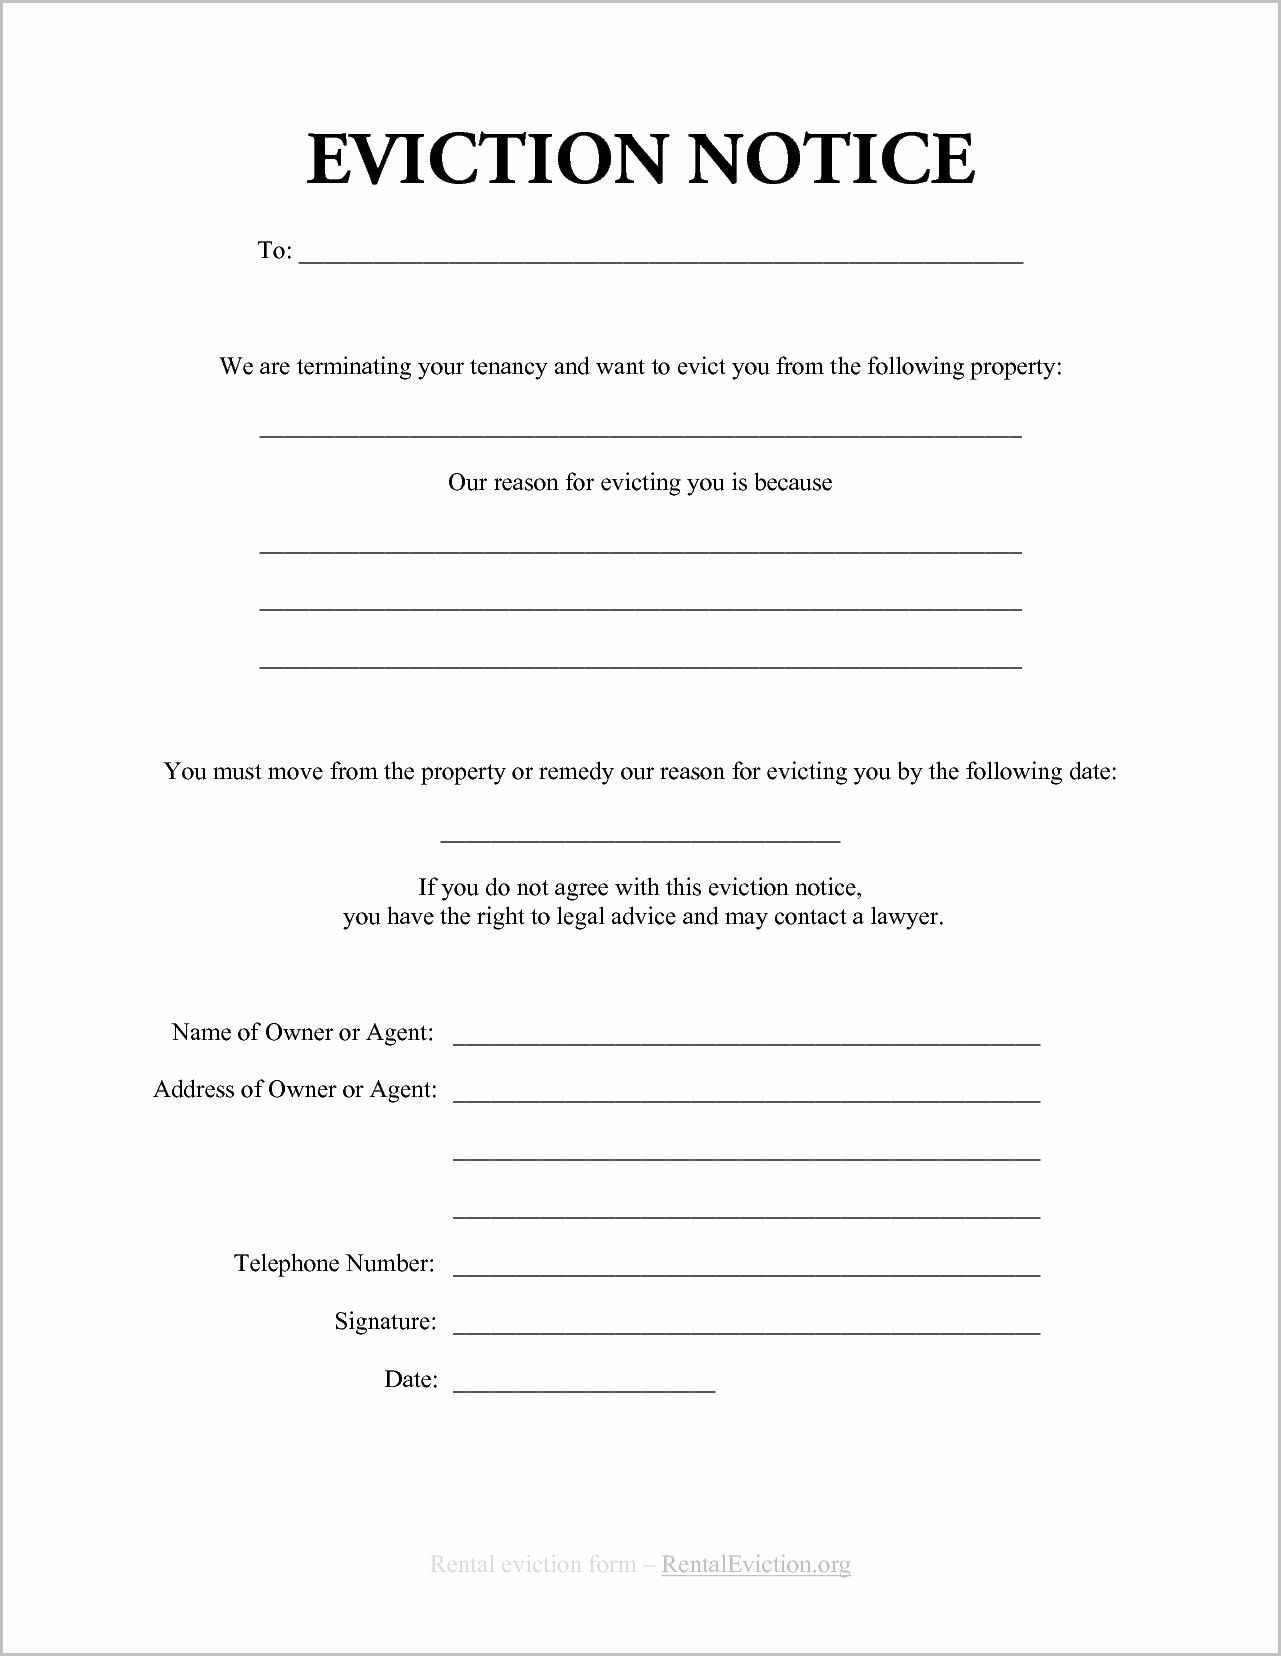 Ontario Teacher Resume Sample Notice Of Eviction Form Ontario Forms Pinterest